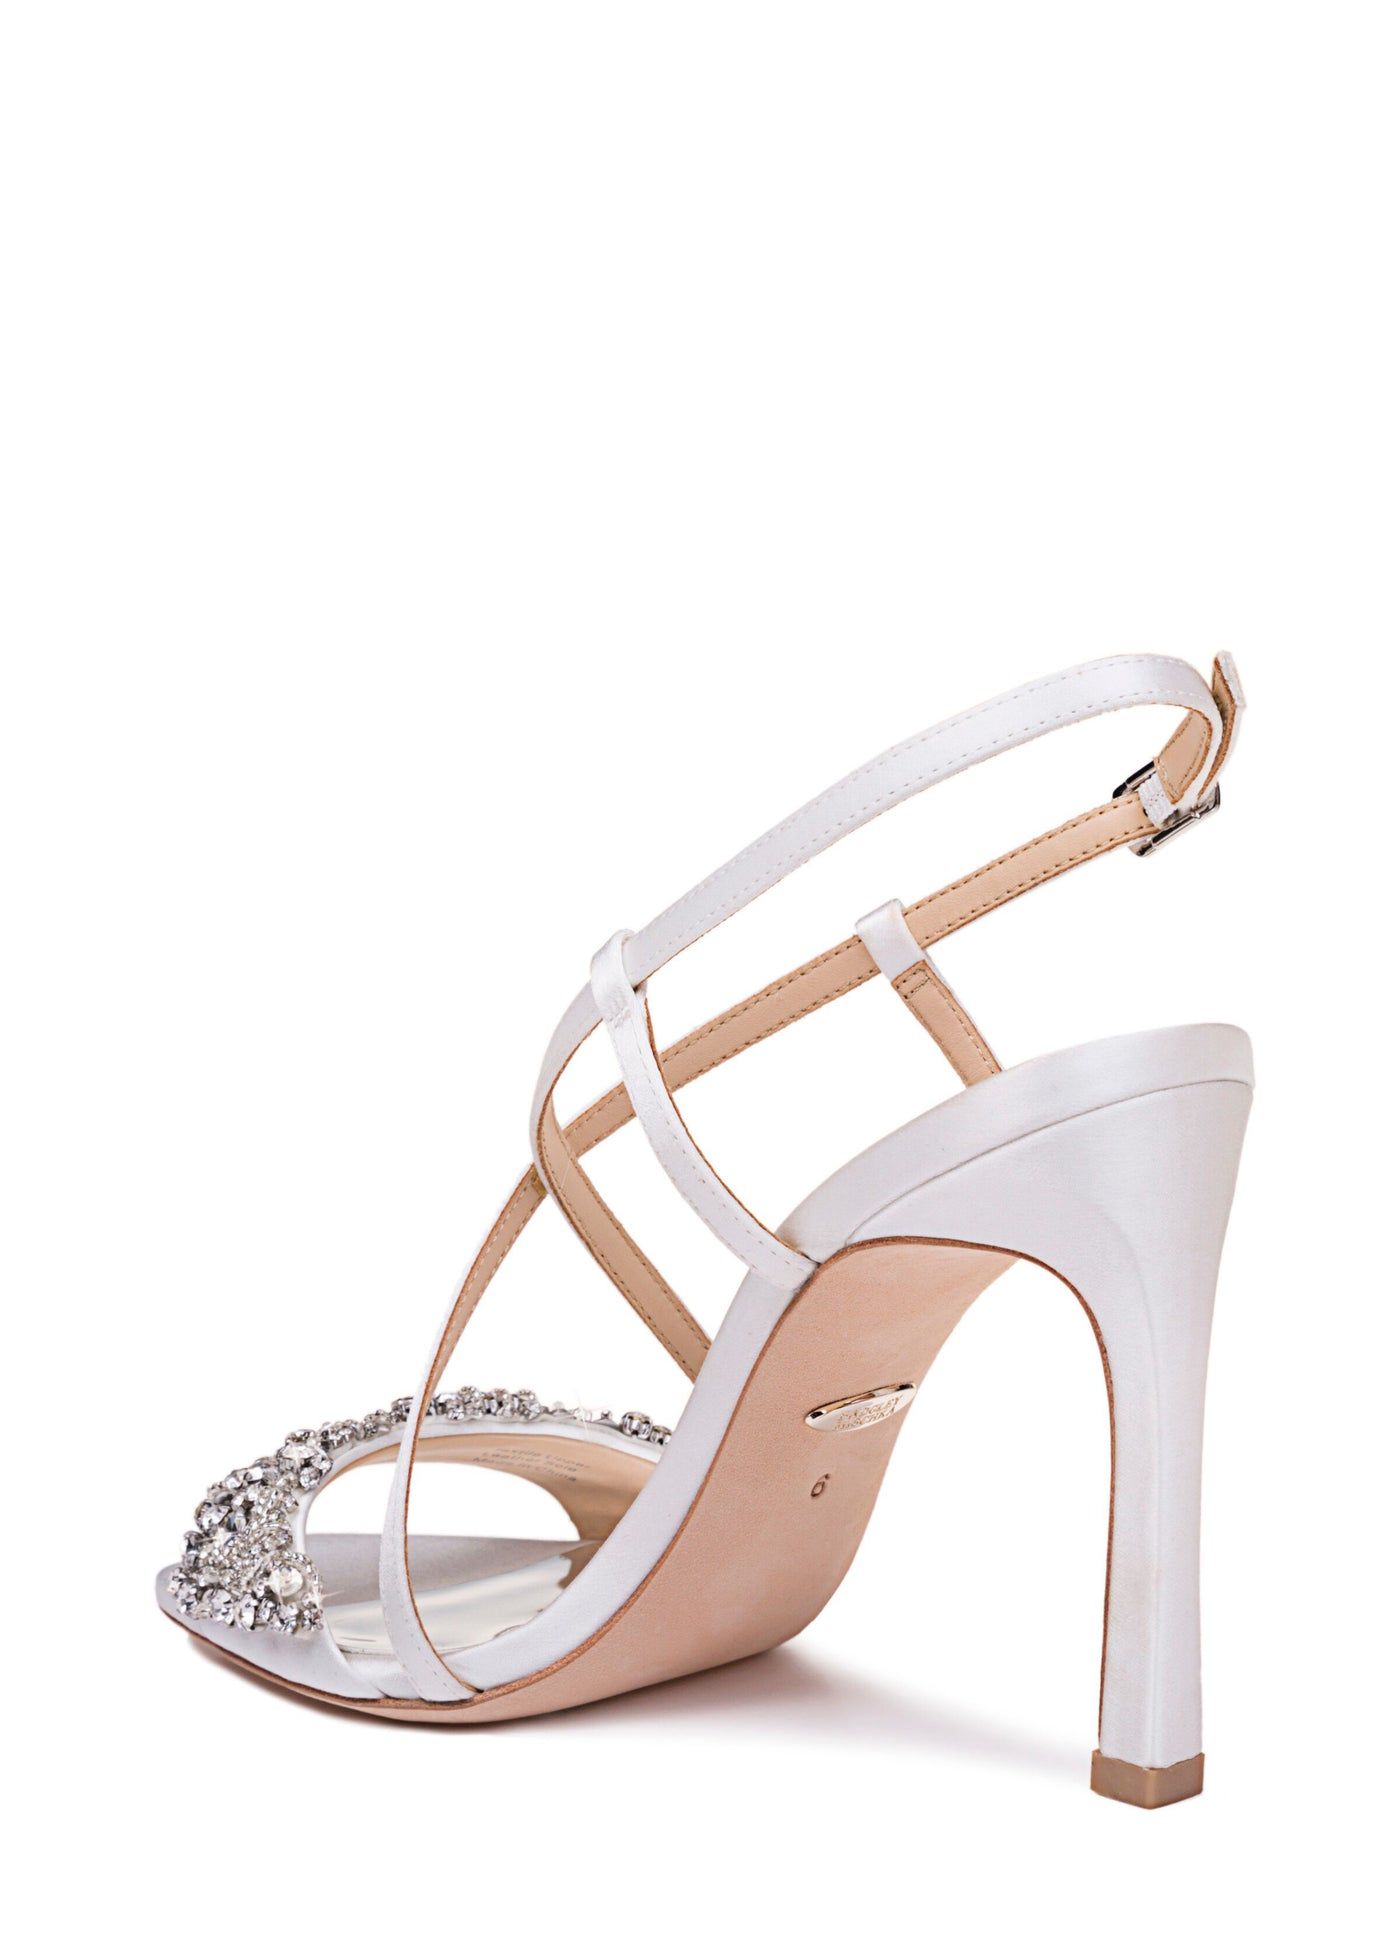 Elana - New, Shoes, Badgley Mischka - Eternal Bridal